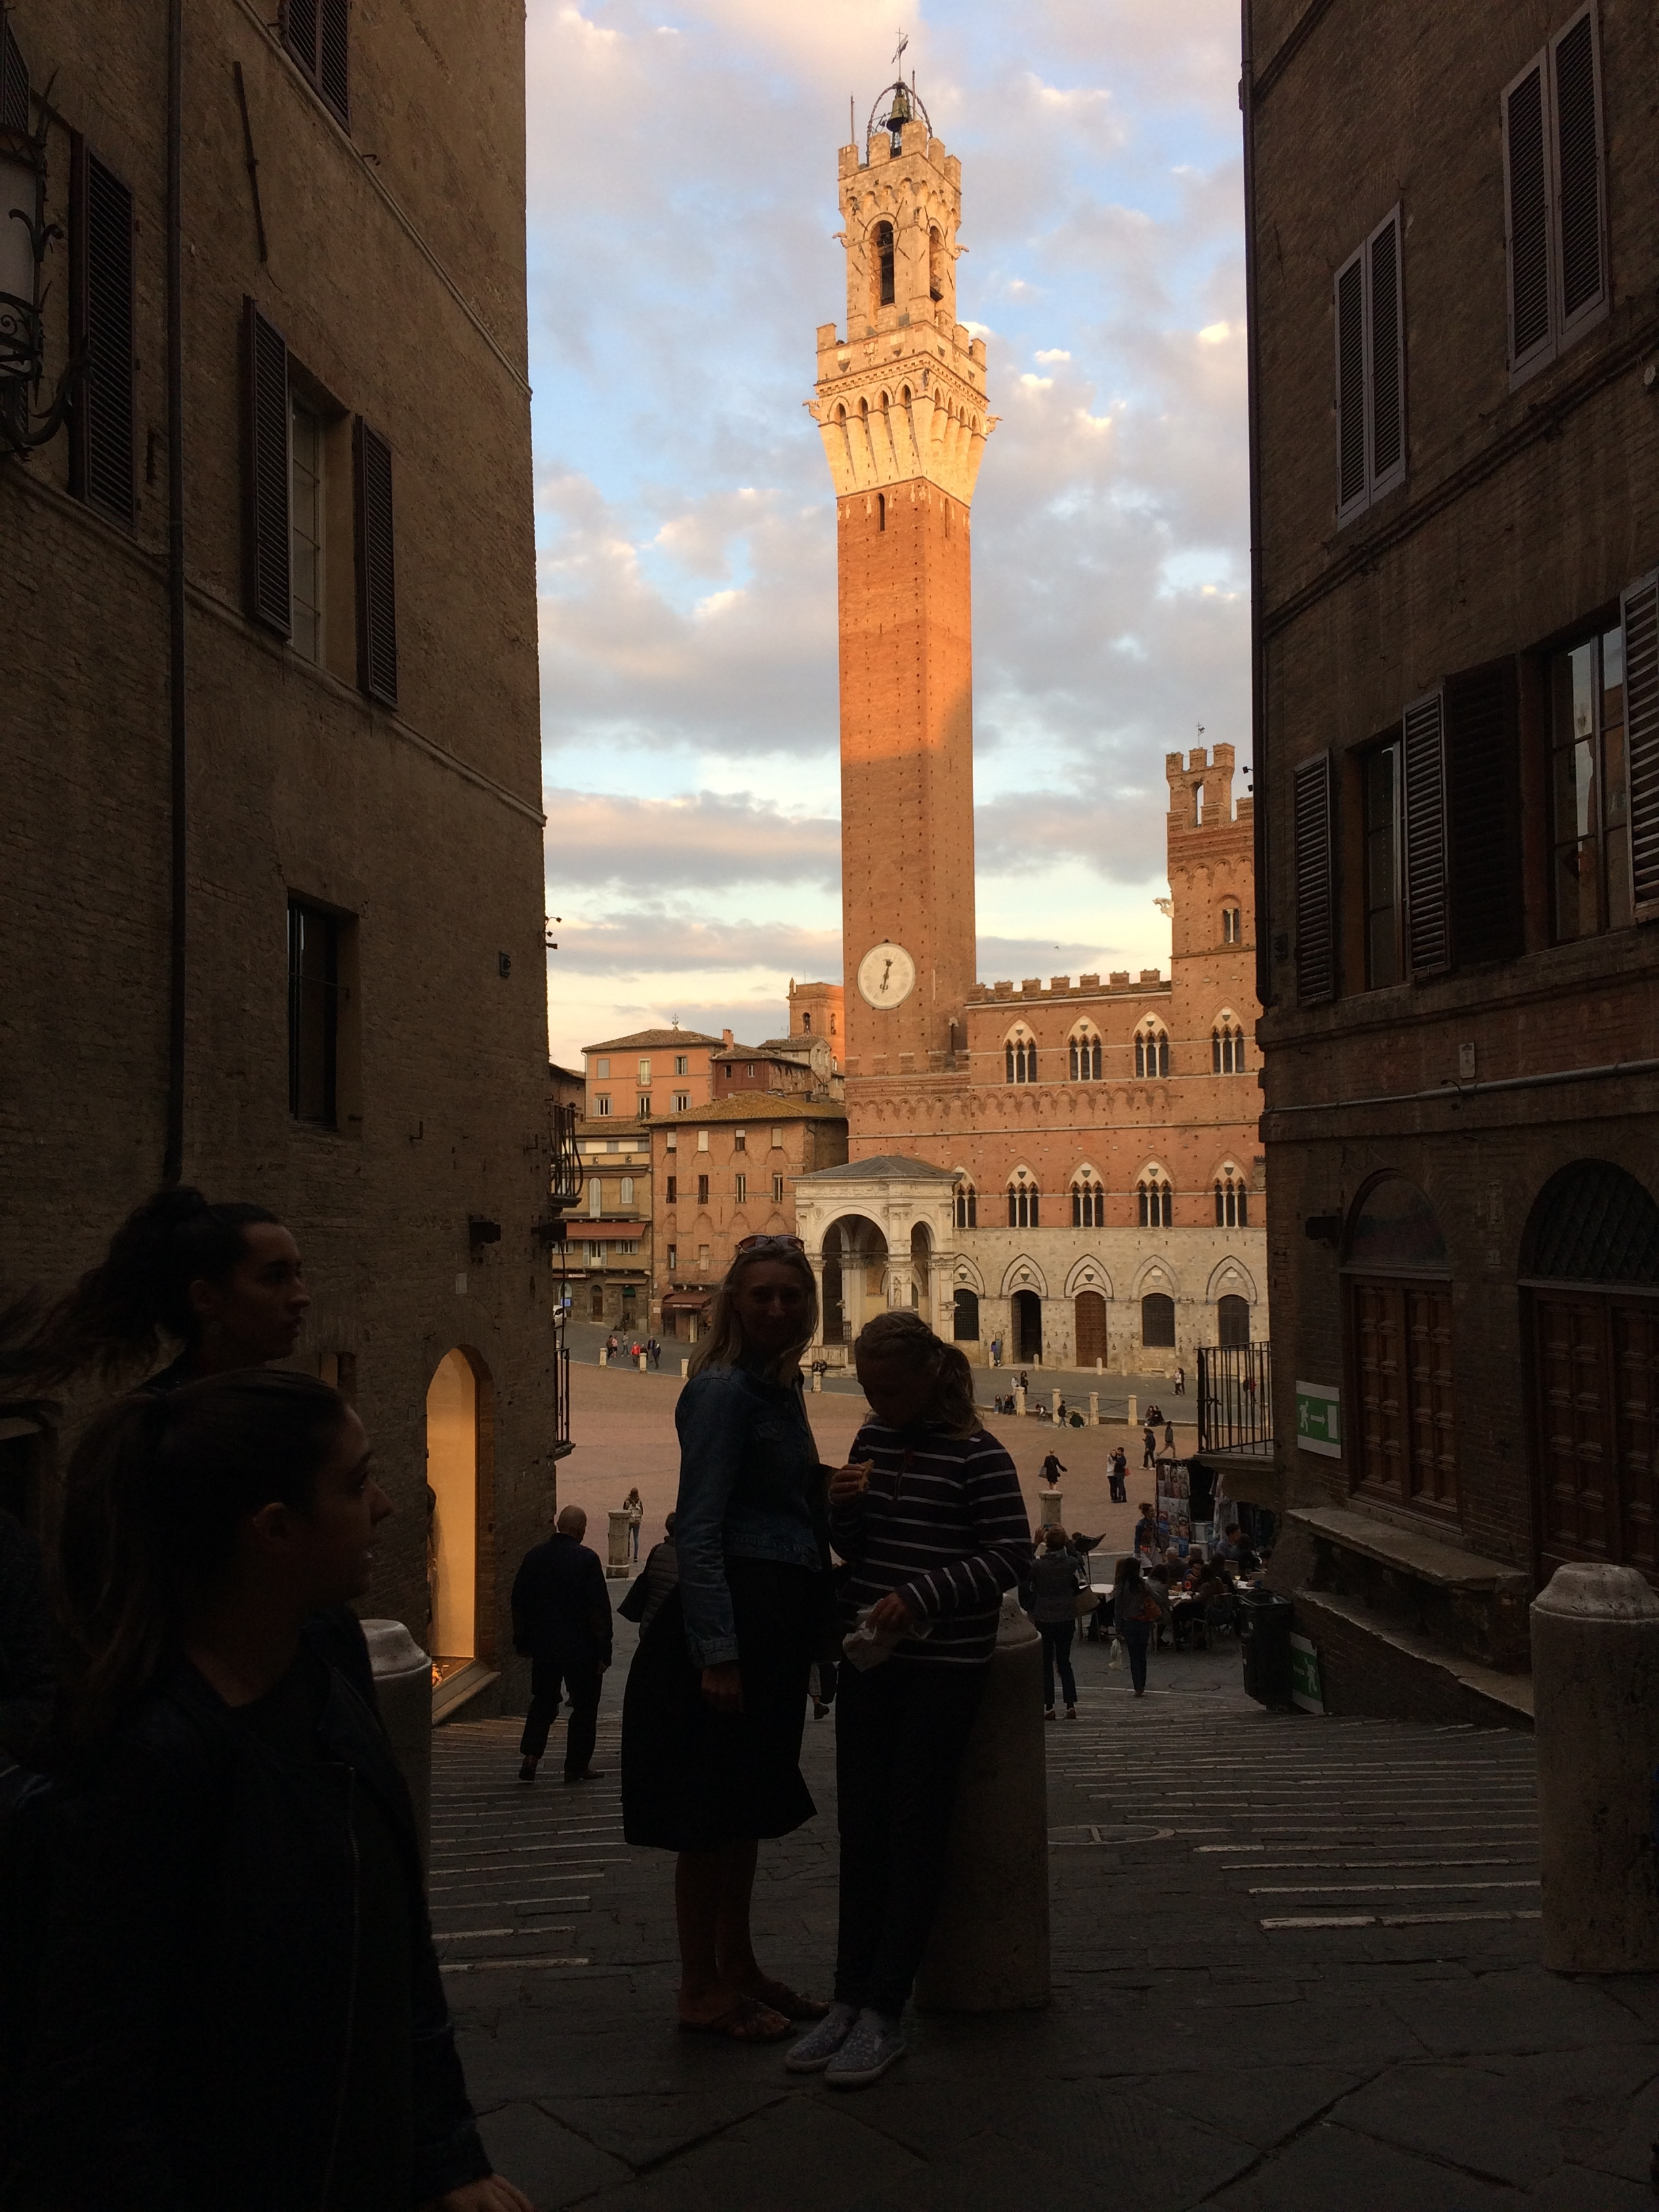 Looking into Siena's Piazza Del Campo and the incredible Torre Del Mangia - October 2018